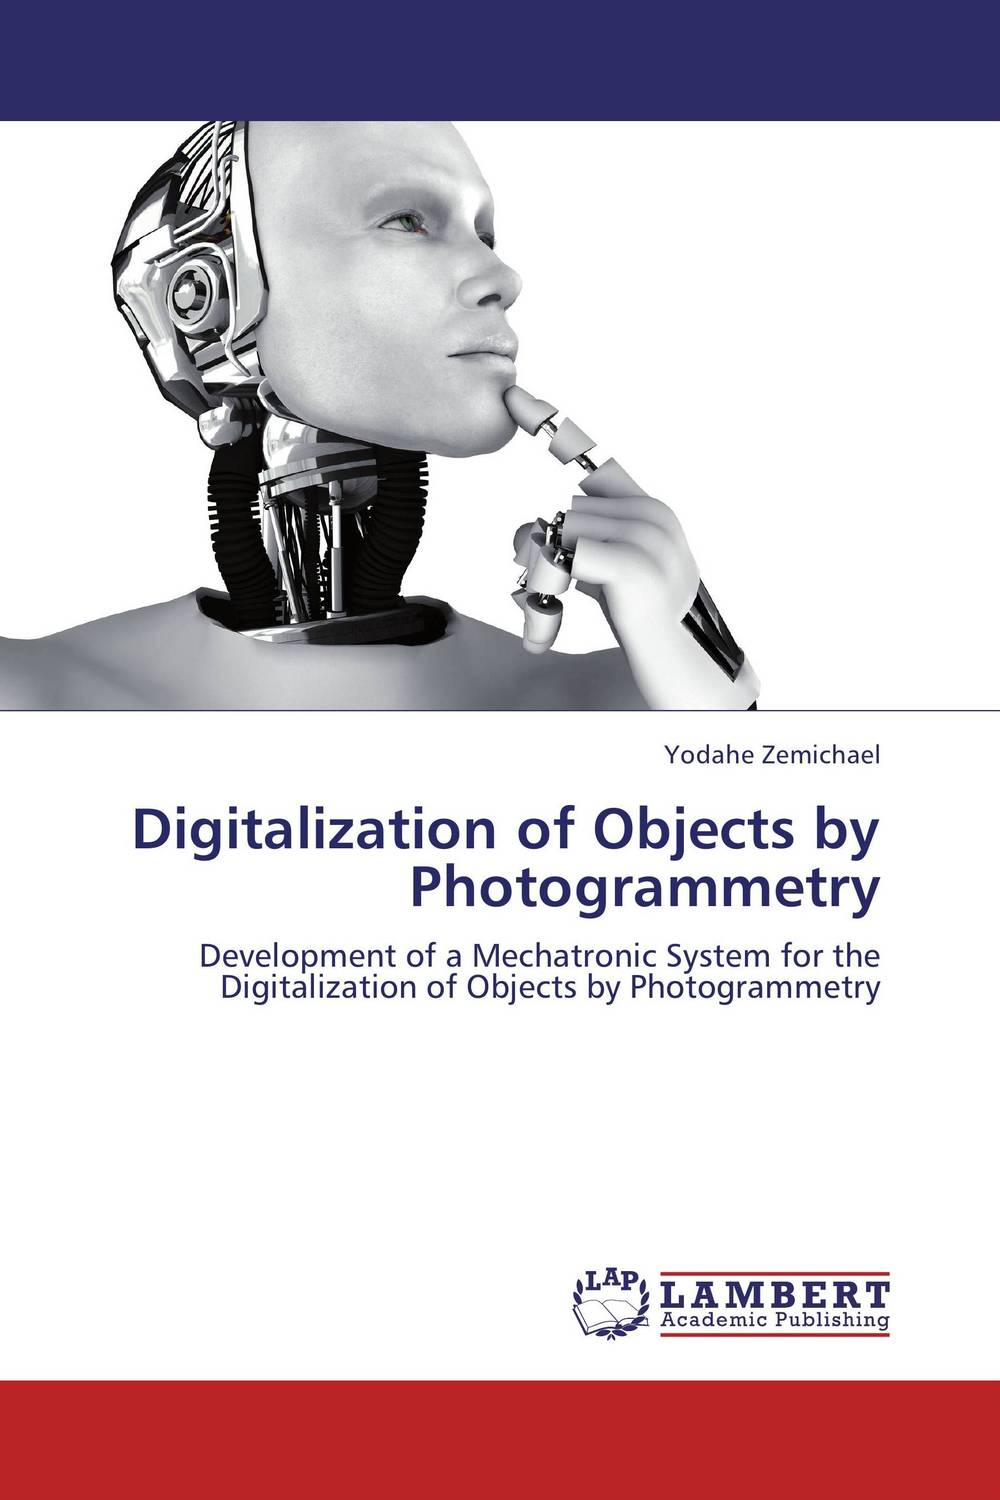 Digitalization of Objects by Photogrammetry